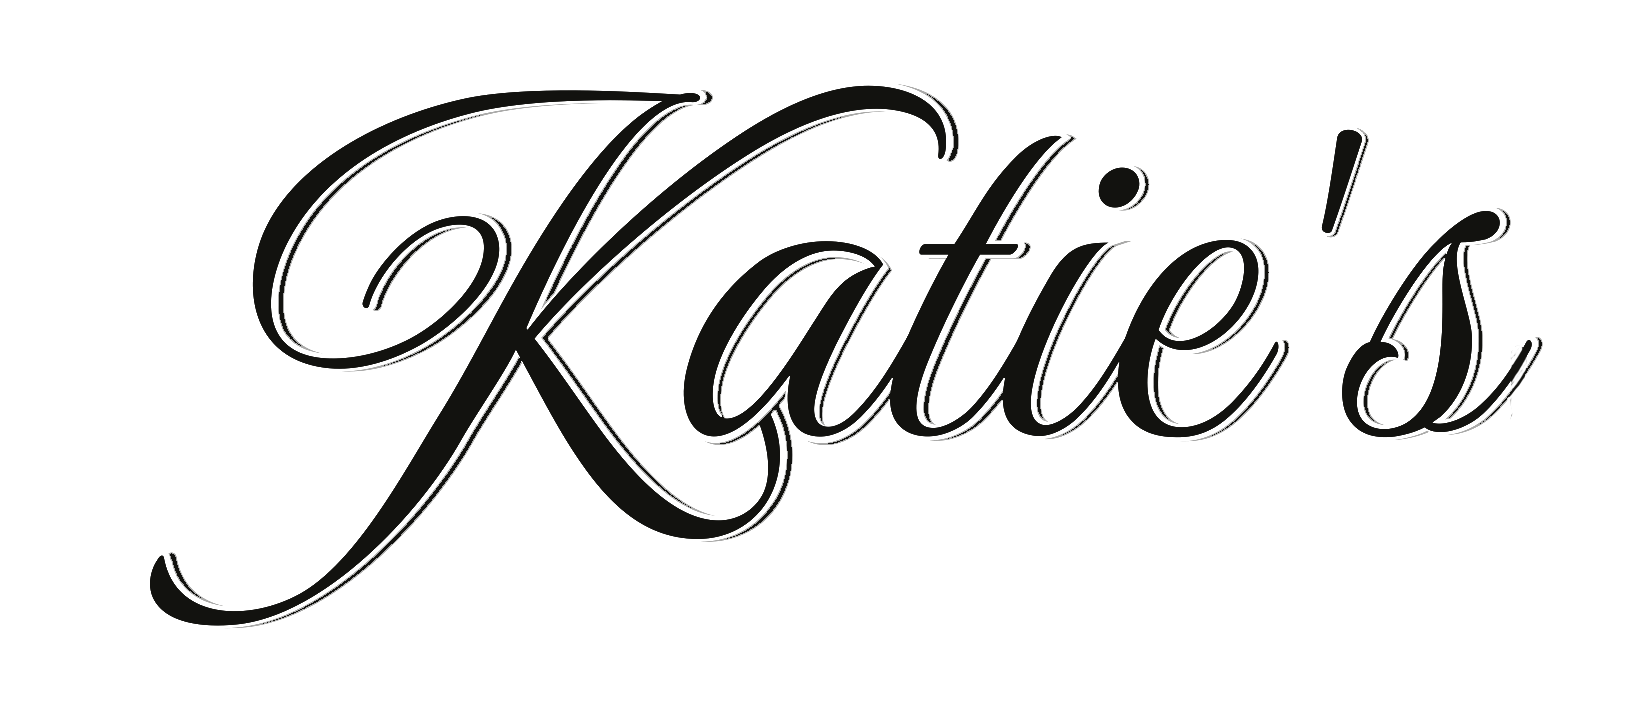 Create A WOW Business Card for Katie's Handcrafted Lighting